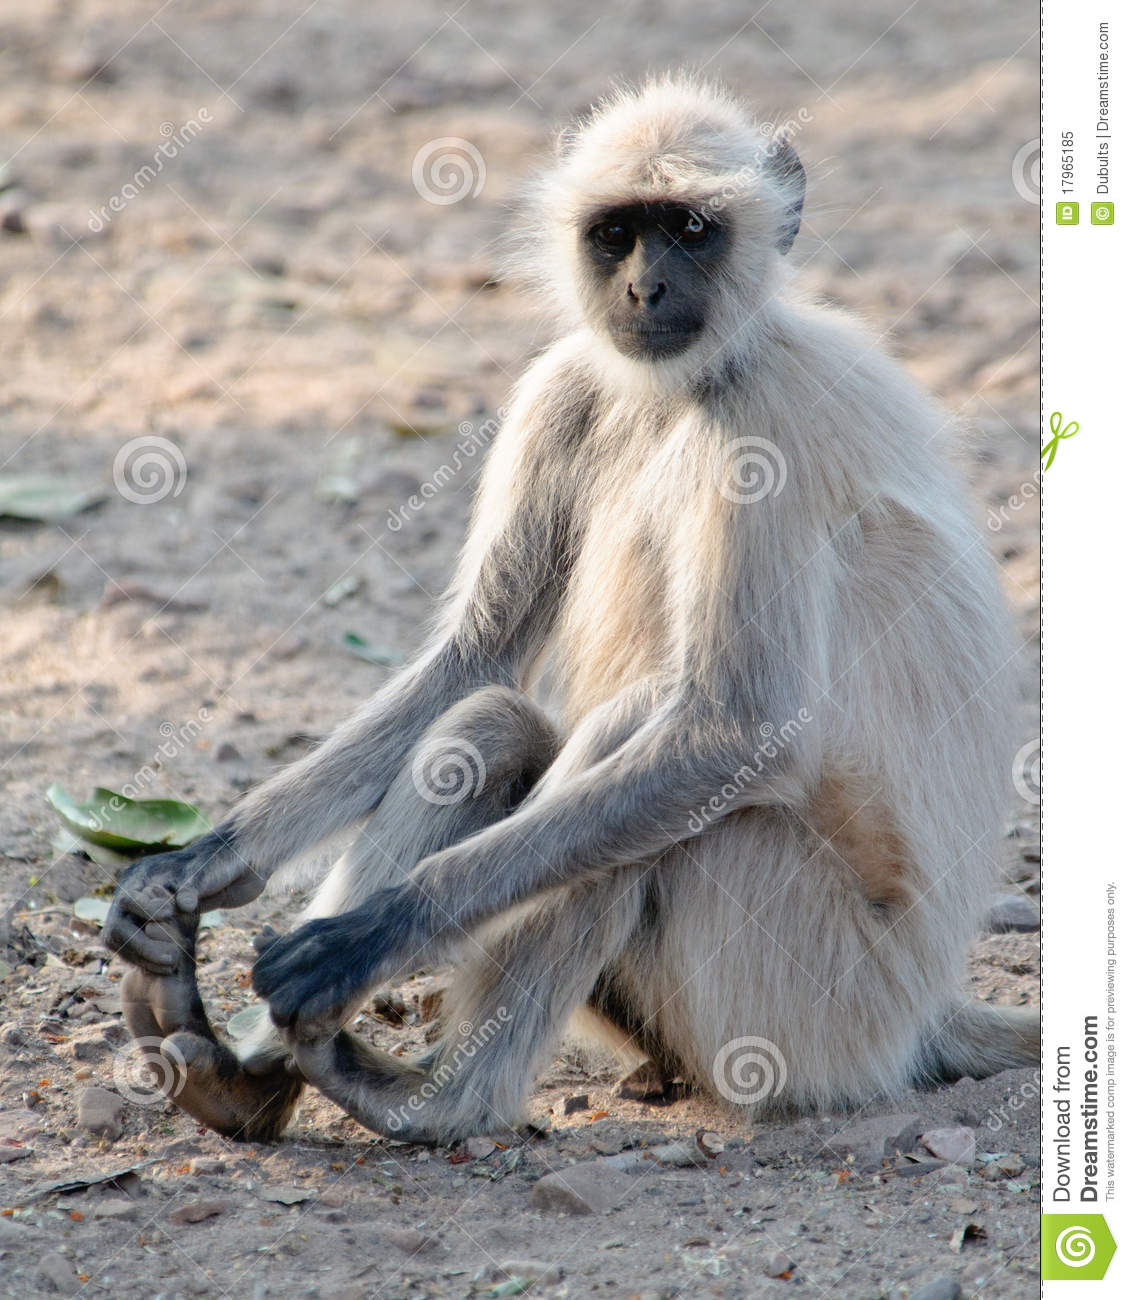 Grey Langurs Pictures, Grey Langurs Images | NaturePhoto